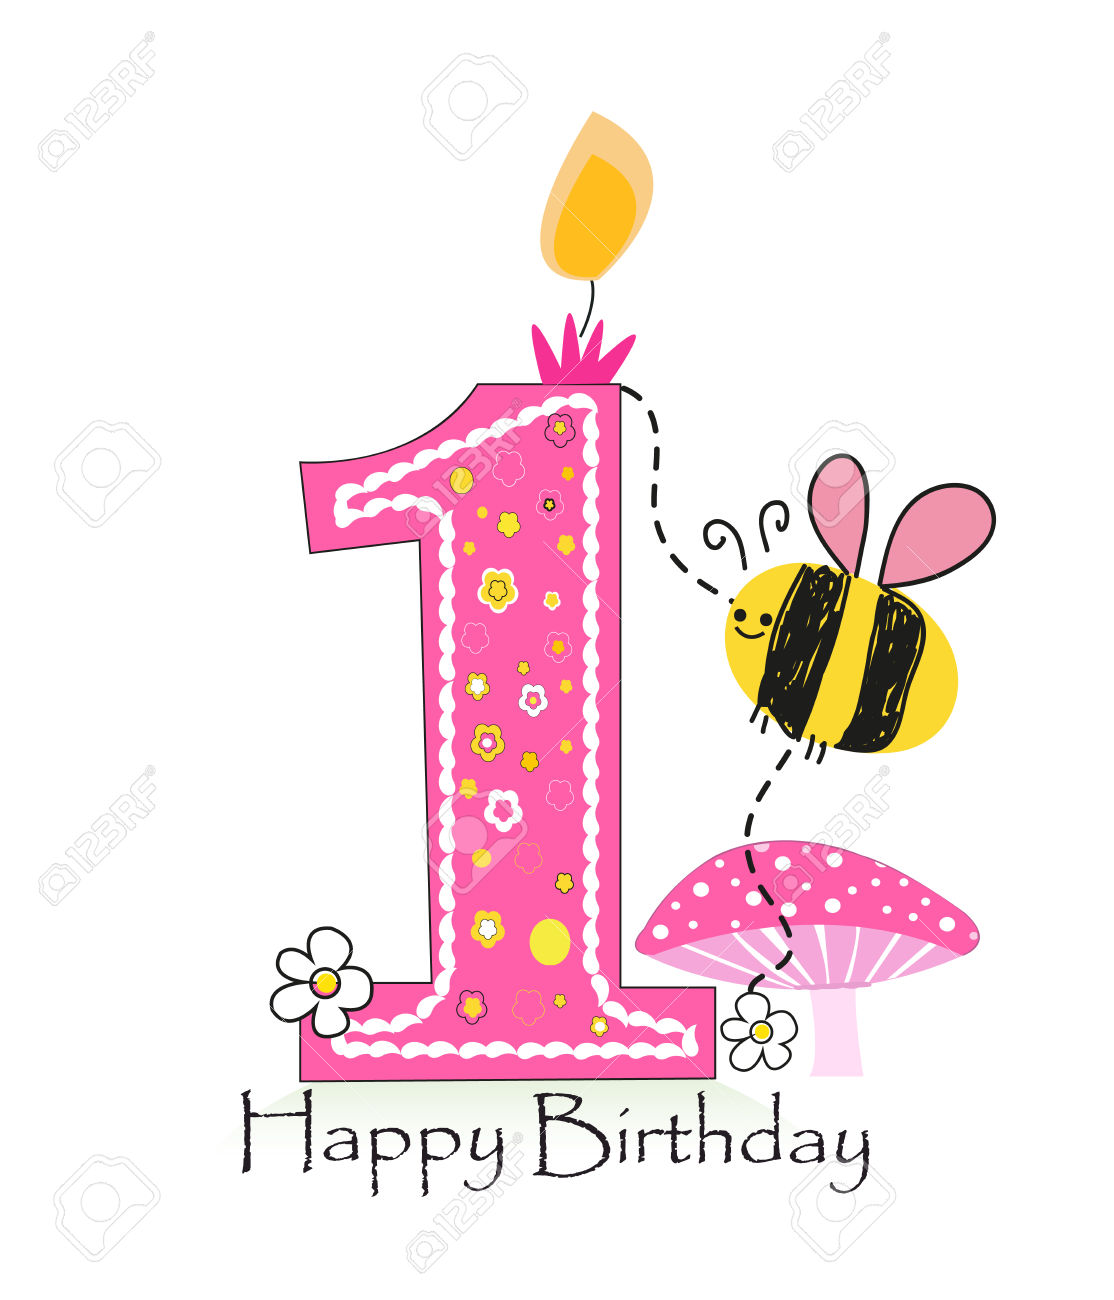 1st birthday images clip art ; d3449671305bac69806f03a8bc5a3d6b_girl-1st-birthday-clipart-pivot-media-happy-1st-birthday-girl-clipart_1114-1300